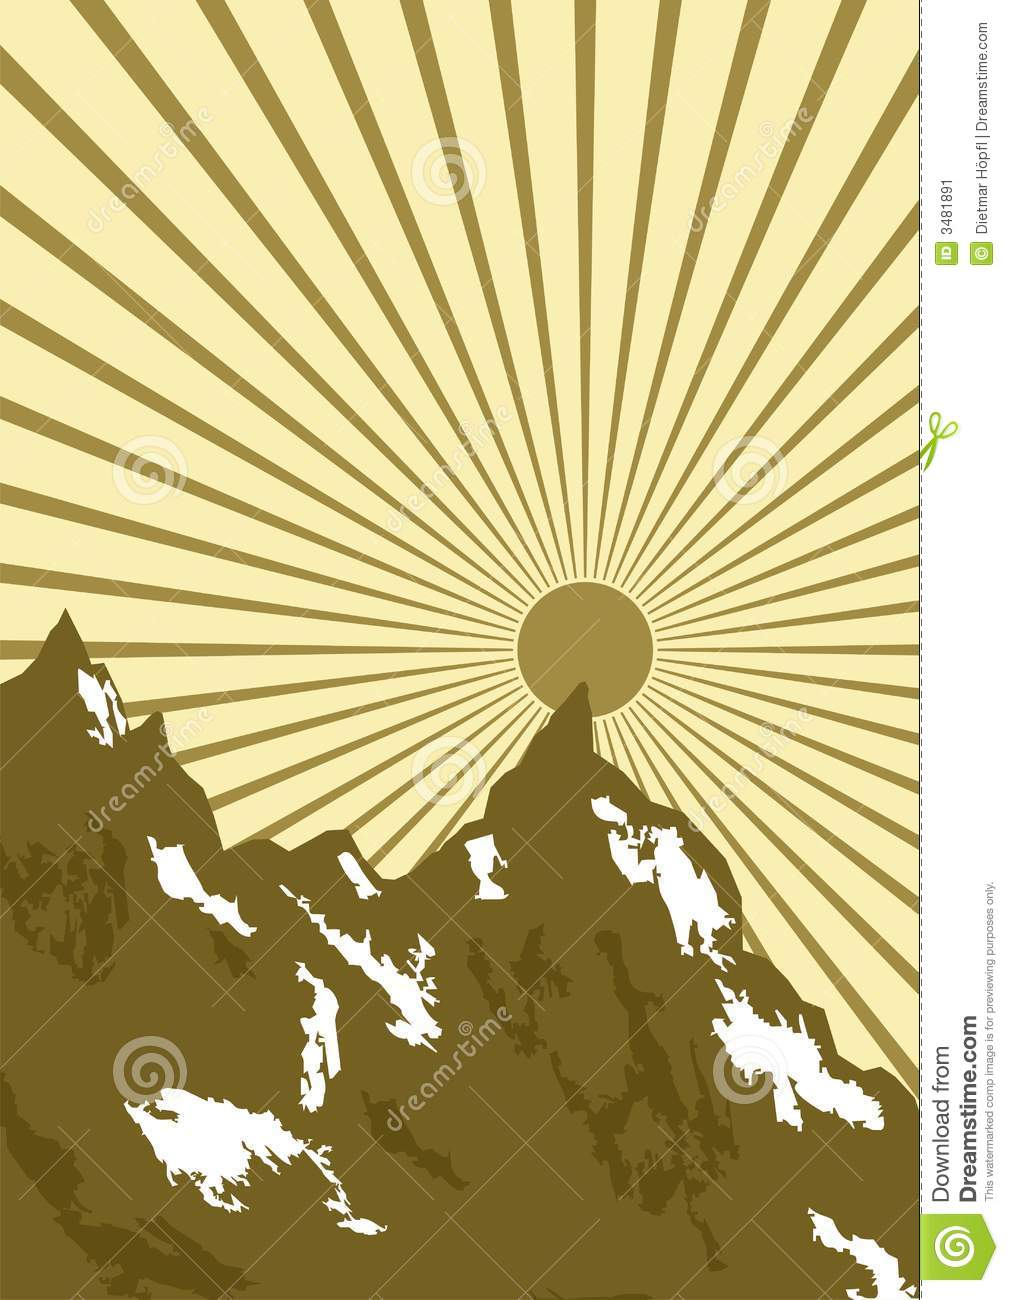 Graphic Of Sun Over Mountains Stock Image Image 3481891